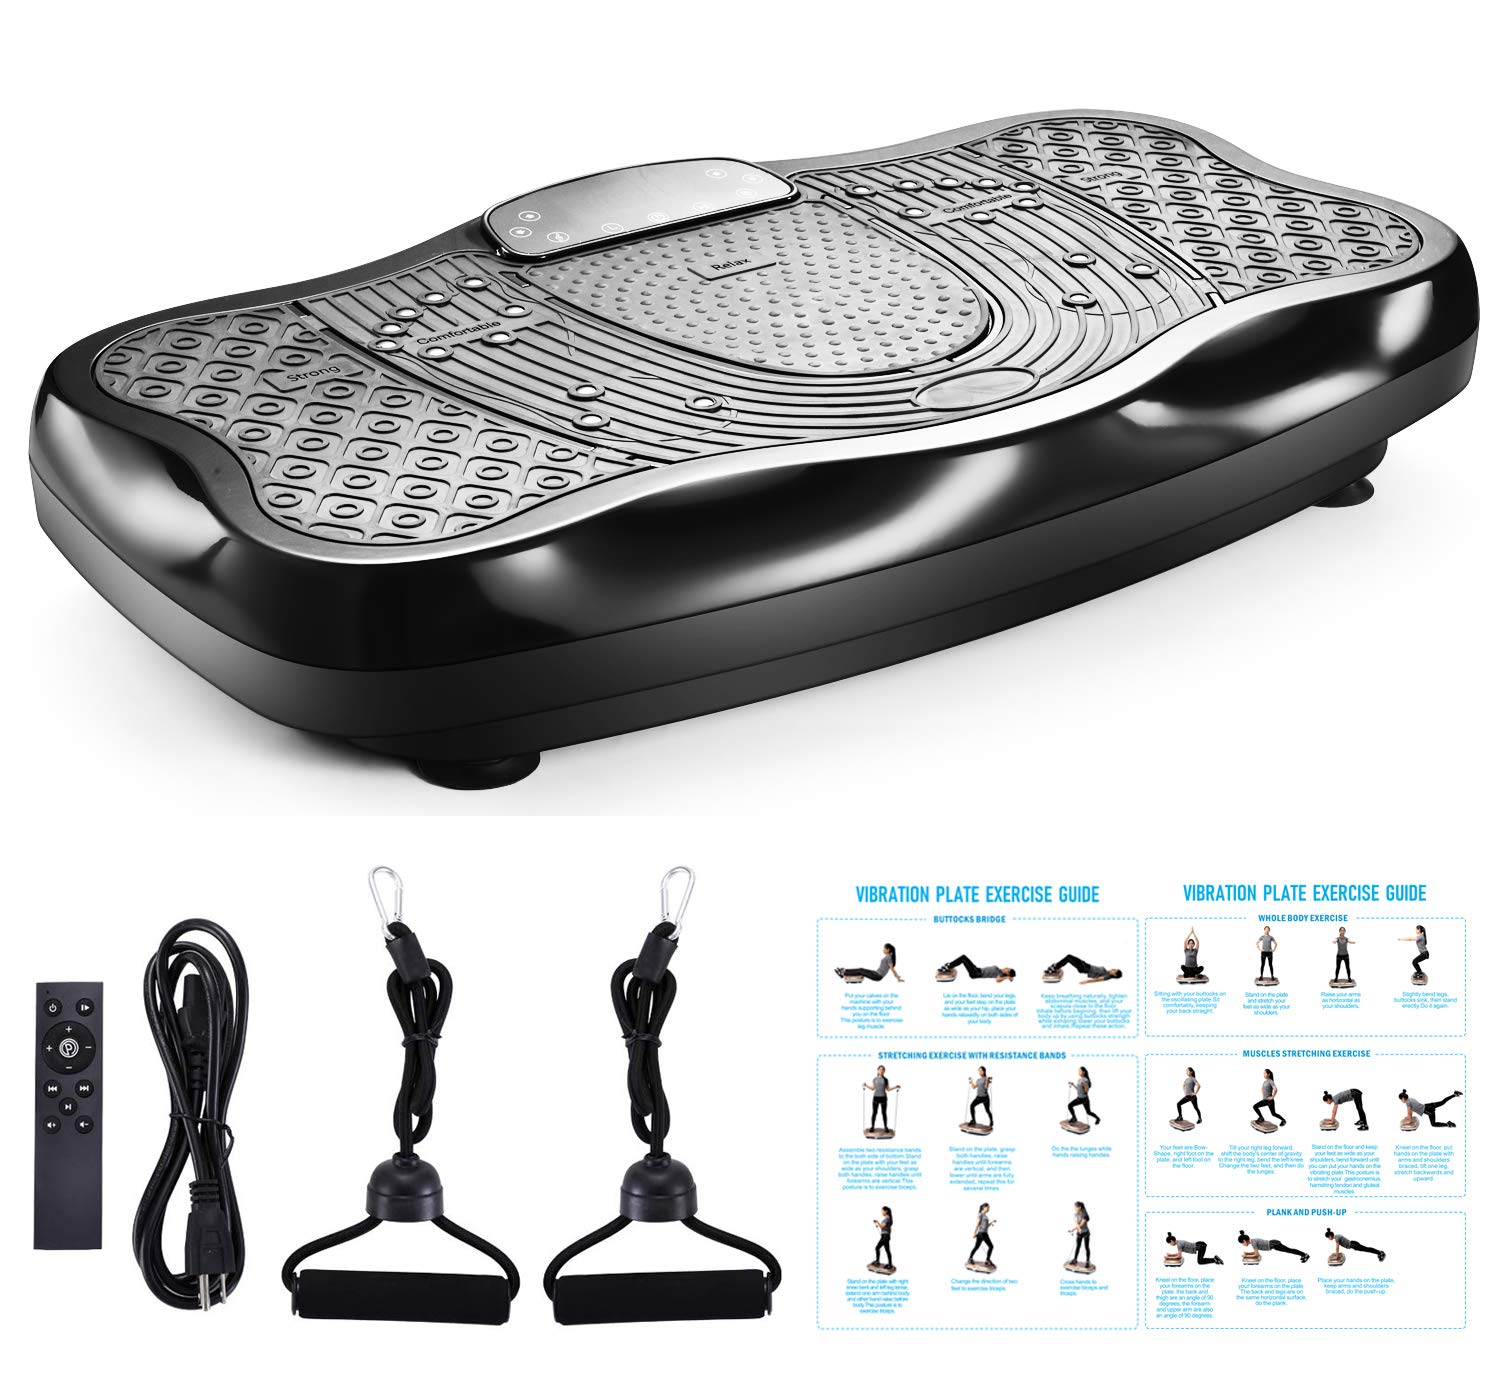 TODO Vibration Platform Power Plate Wholebody Vibrating Massager- Remote Control/Bluetooth Music/USB Connection